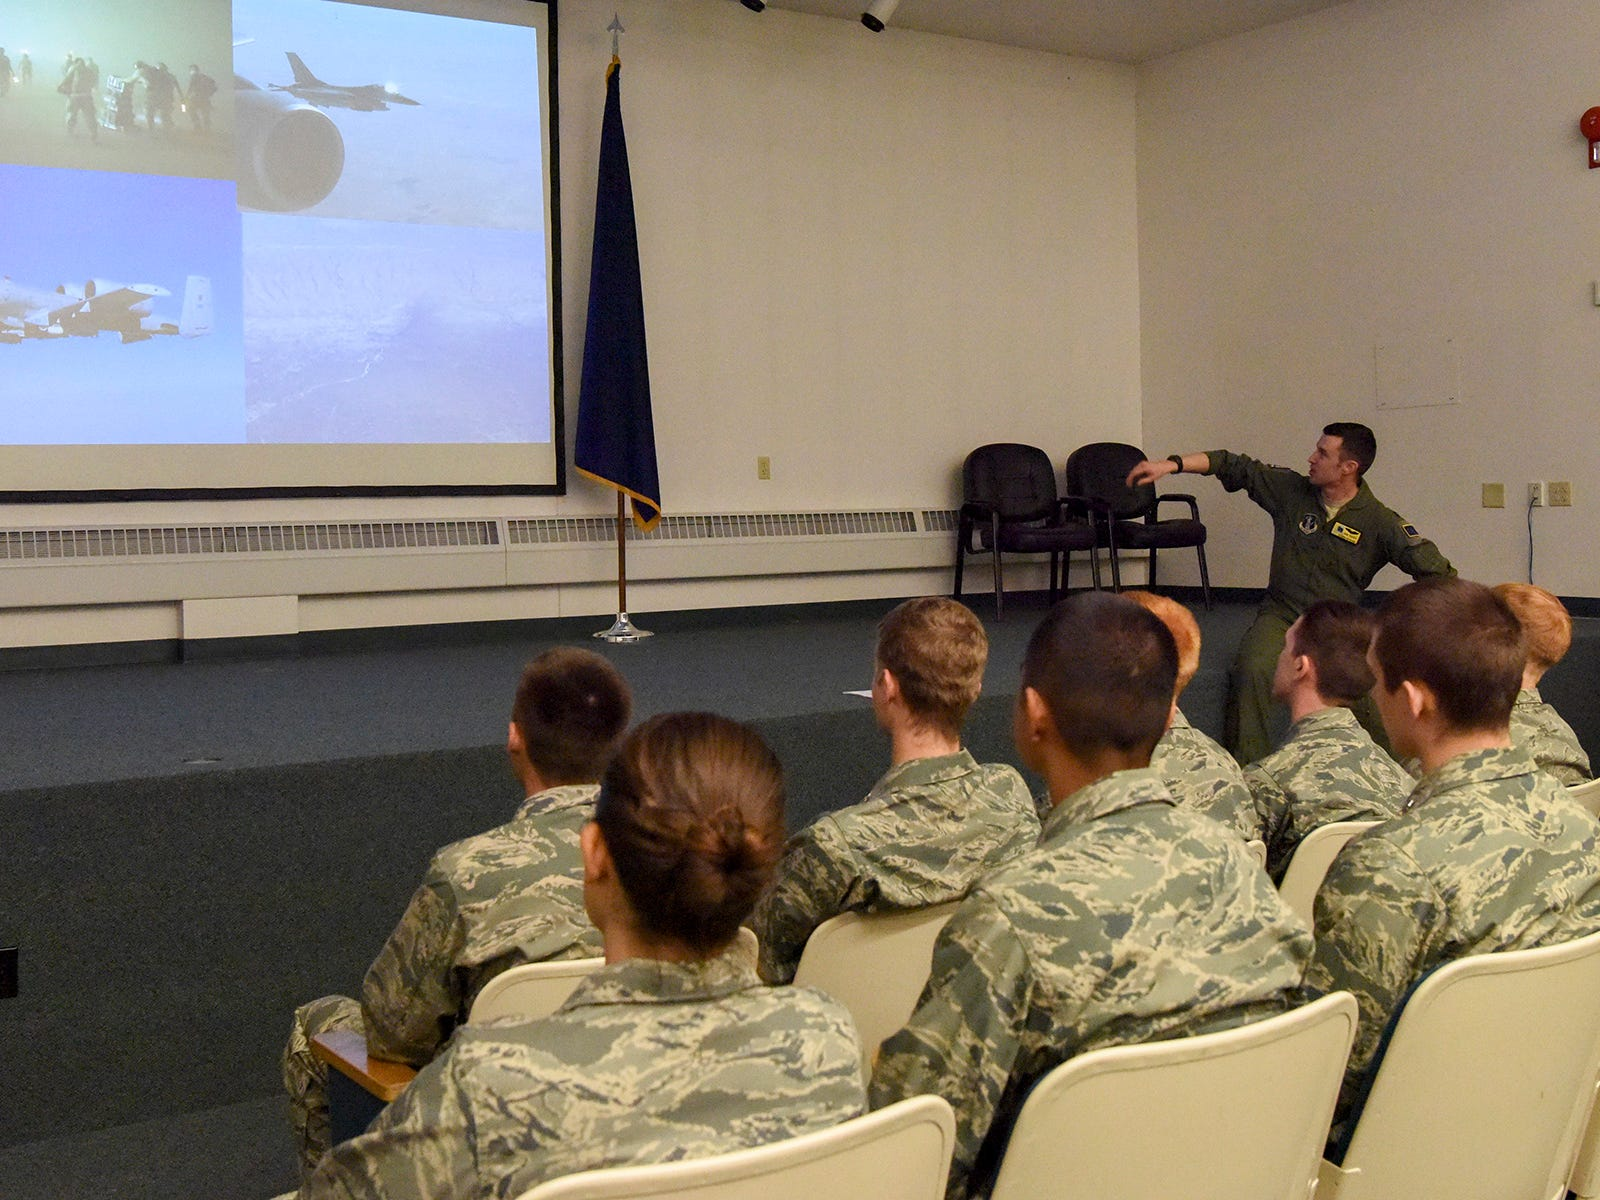 Air Force Junior Reserve Officer Training Corps cadets from North Pole High School, North Pole, Alaska, receive a pre-flight briefing from Capt. John Goeres prior to the cadets incentive flight onboard one of the 168th Wing's KC-135R Stratotankers, May 4, 2017, Eielson AFB, Alaska. The flight was coordinated through the wing's recruiting office and the school's AFJROTC instructor, retired U.S. Air Force Colonel Michael Rauenhorst, and is taking place during joint training exercise NORTHERN EDGE 2017. (U.S. Air National Guard photo by Senior Master Sgt. Paul Mann)